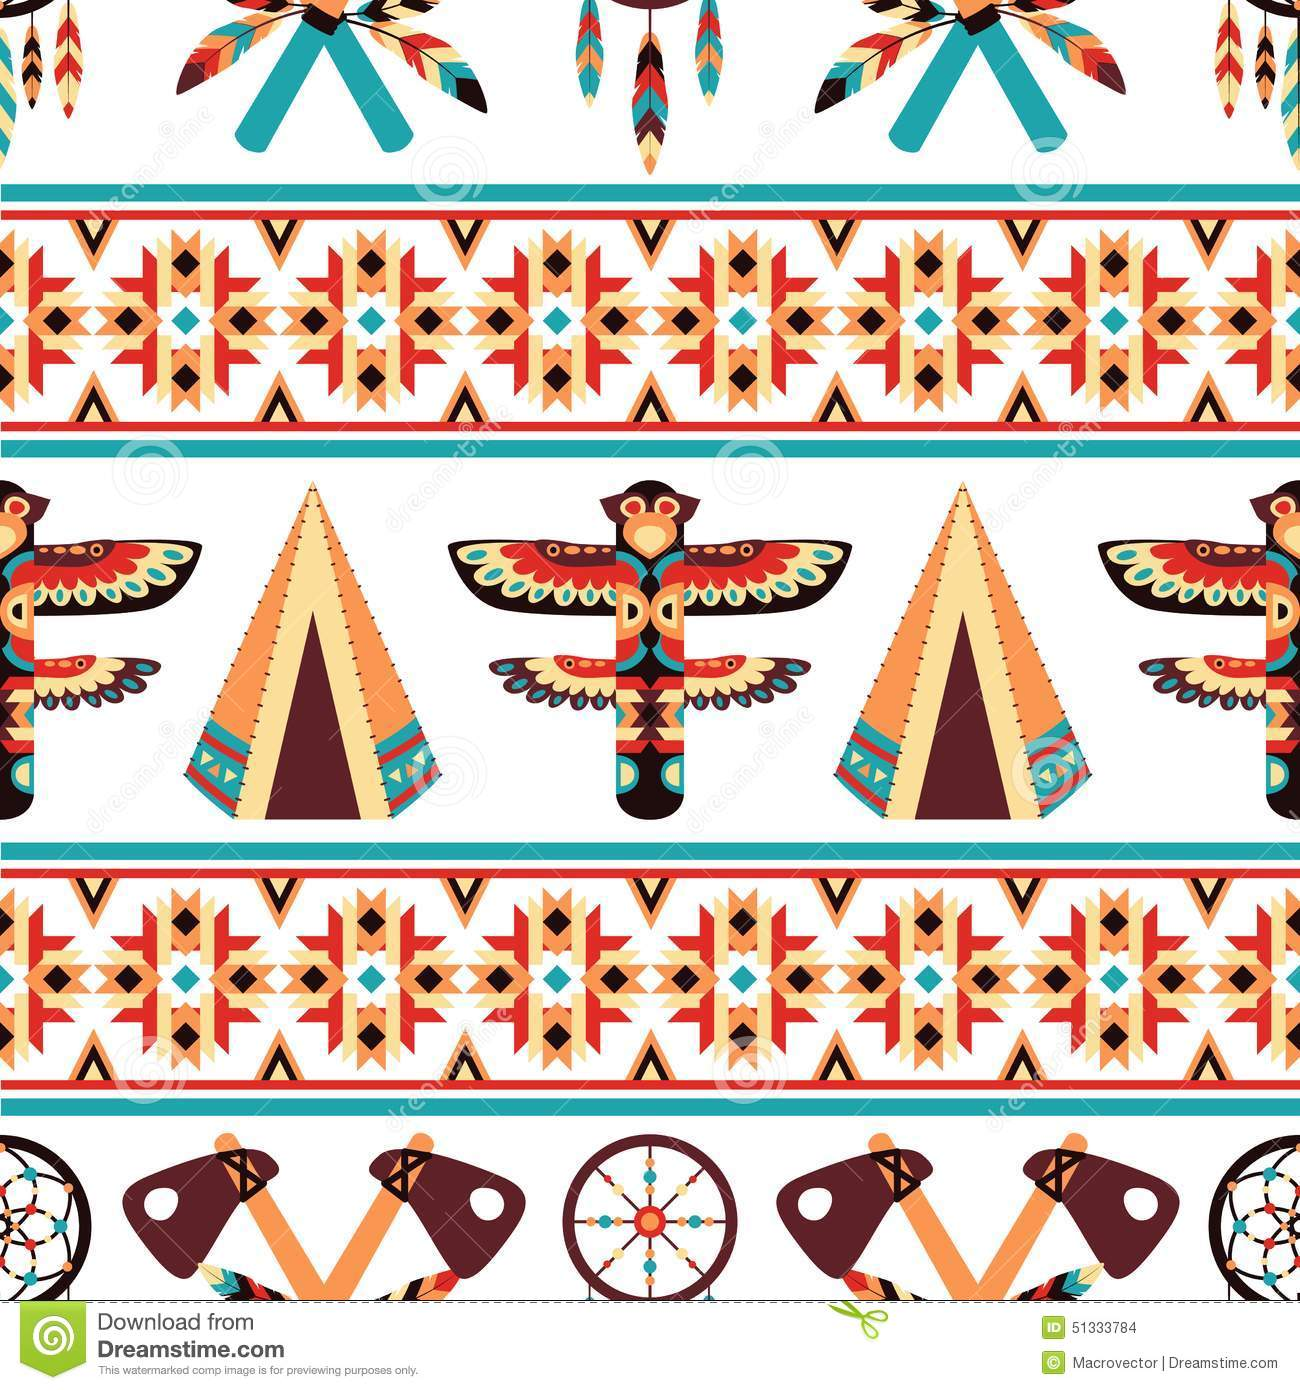 ethnic border pattern design stock vector image 51333784 indian headdress clipart red white and blue indian headdress clip art no background